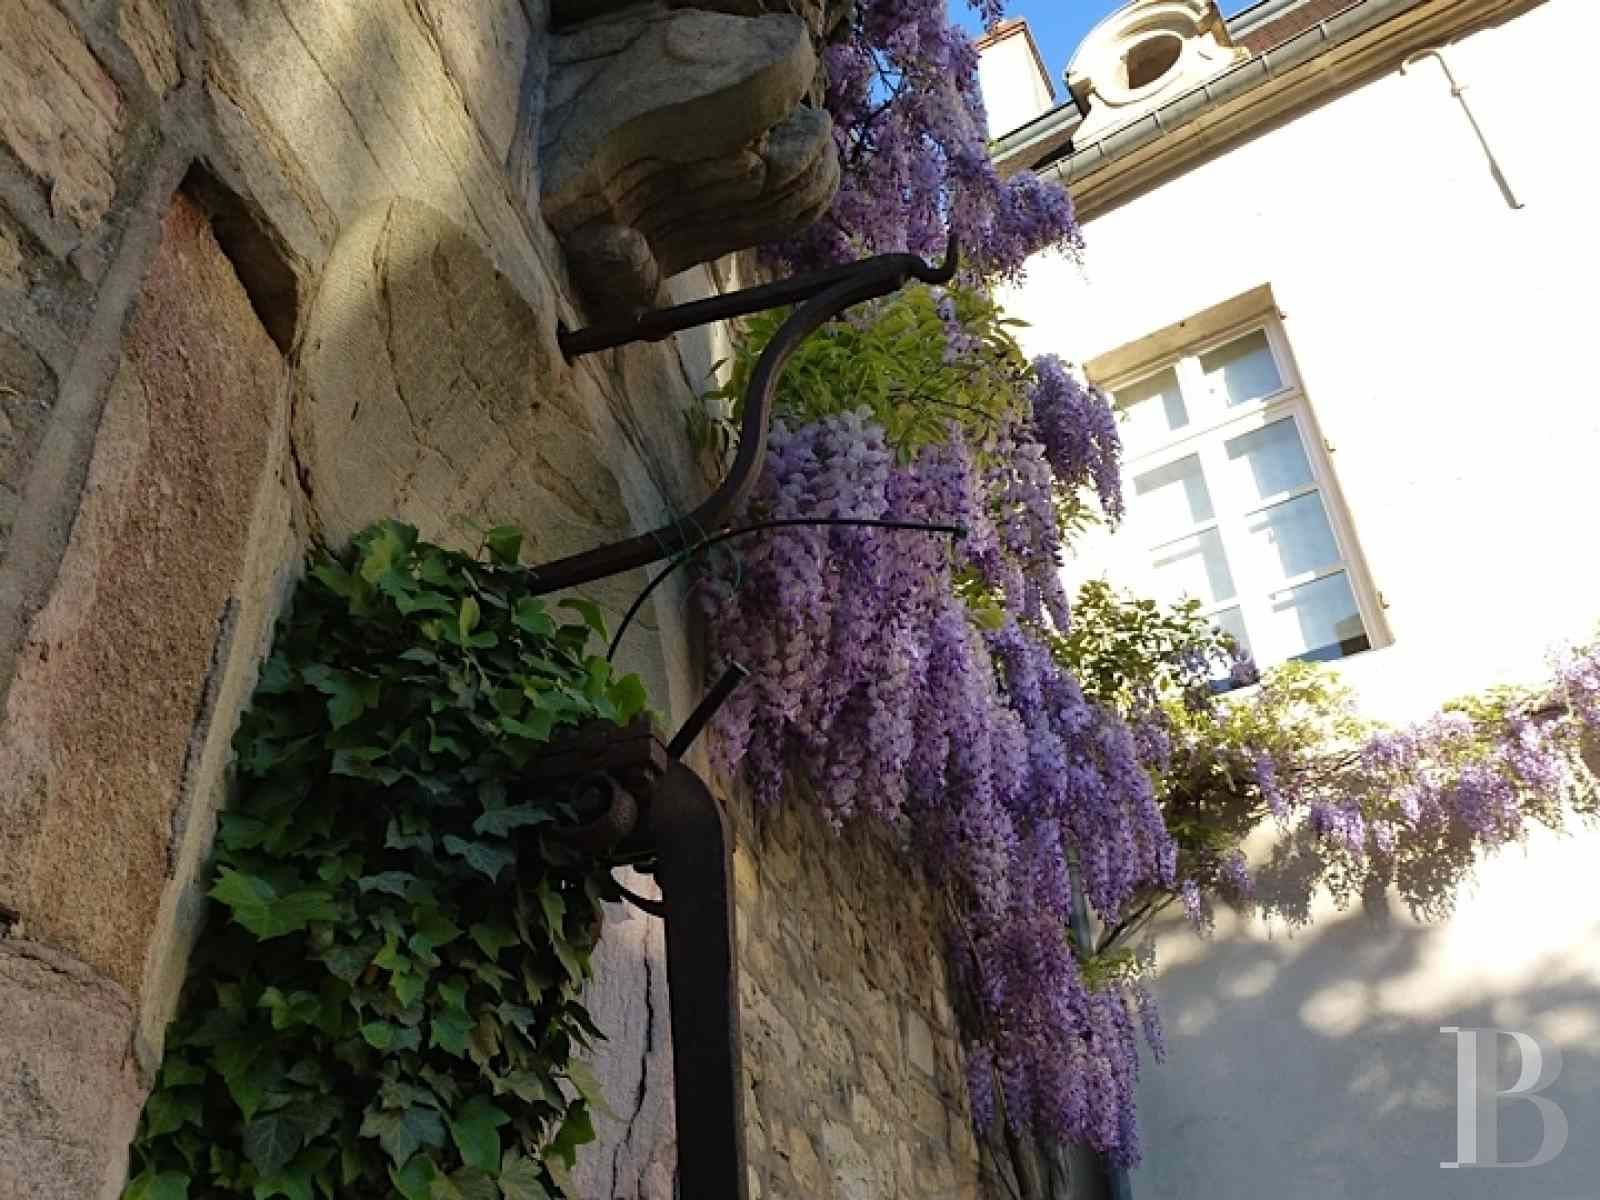 mansion houses for sale France burgundy flat garden - 16 zoom